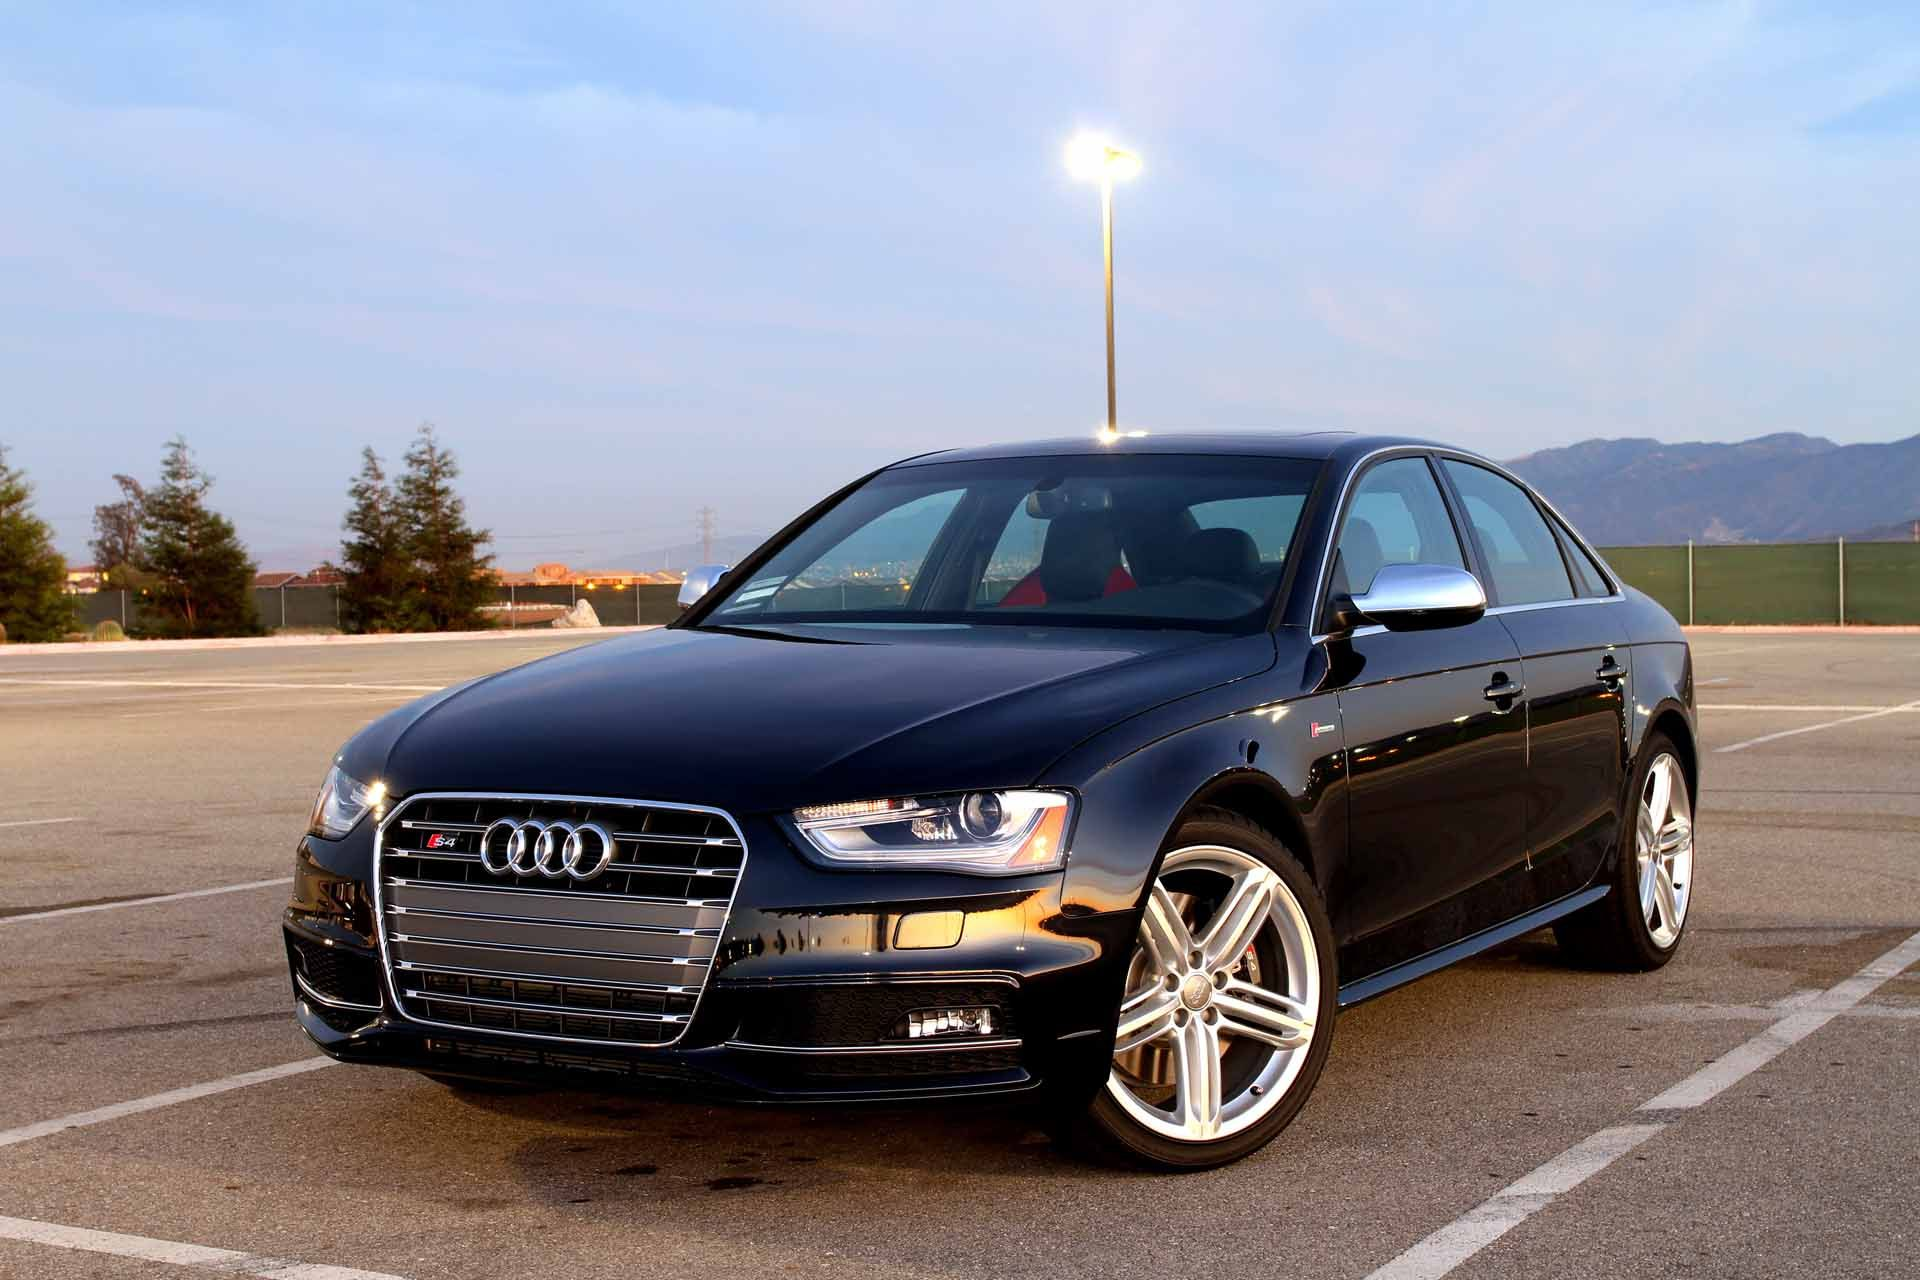 2015 audi s4 reviews photos video specs price. Black Bedroom Furniture Sets. Home Design Ideas